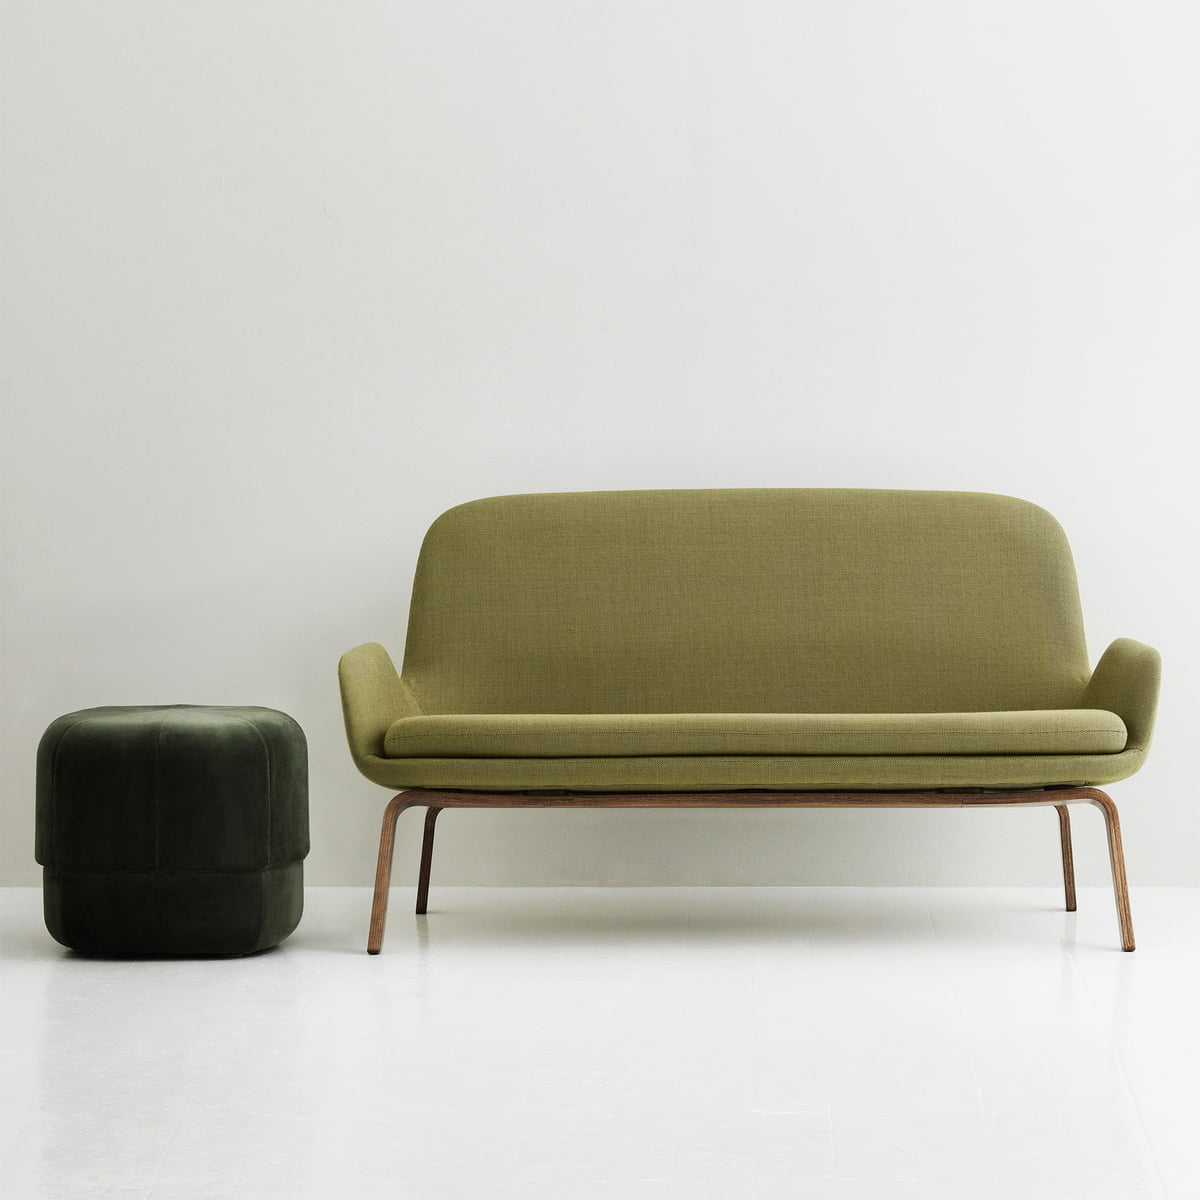 Foretrukket Era Sofa by Normann Copenhagen at the shop VY-76